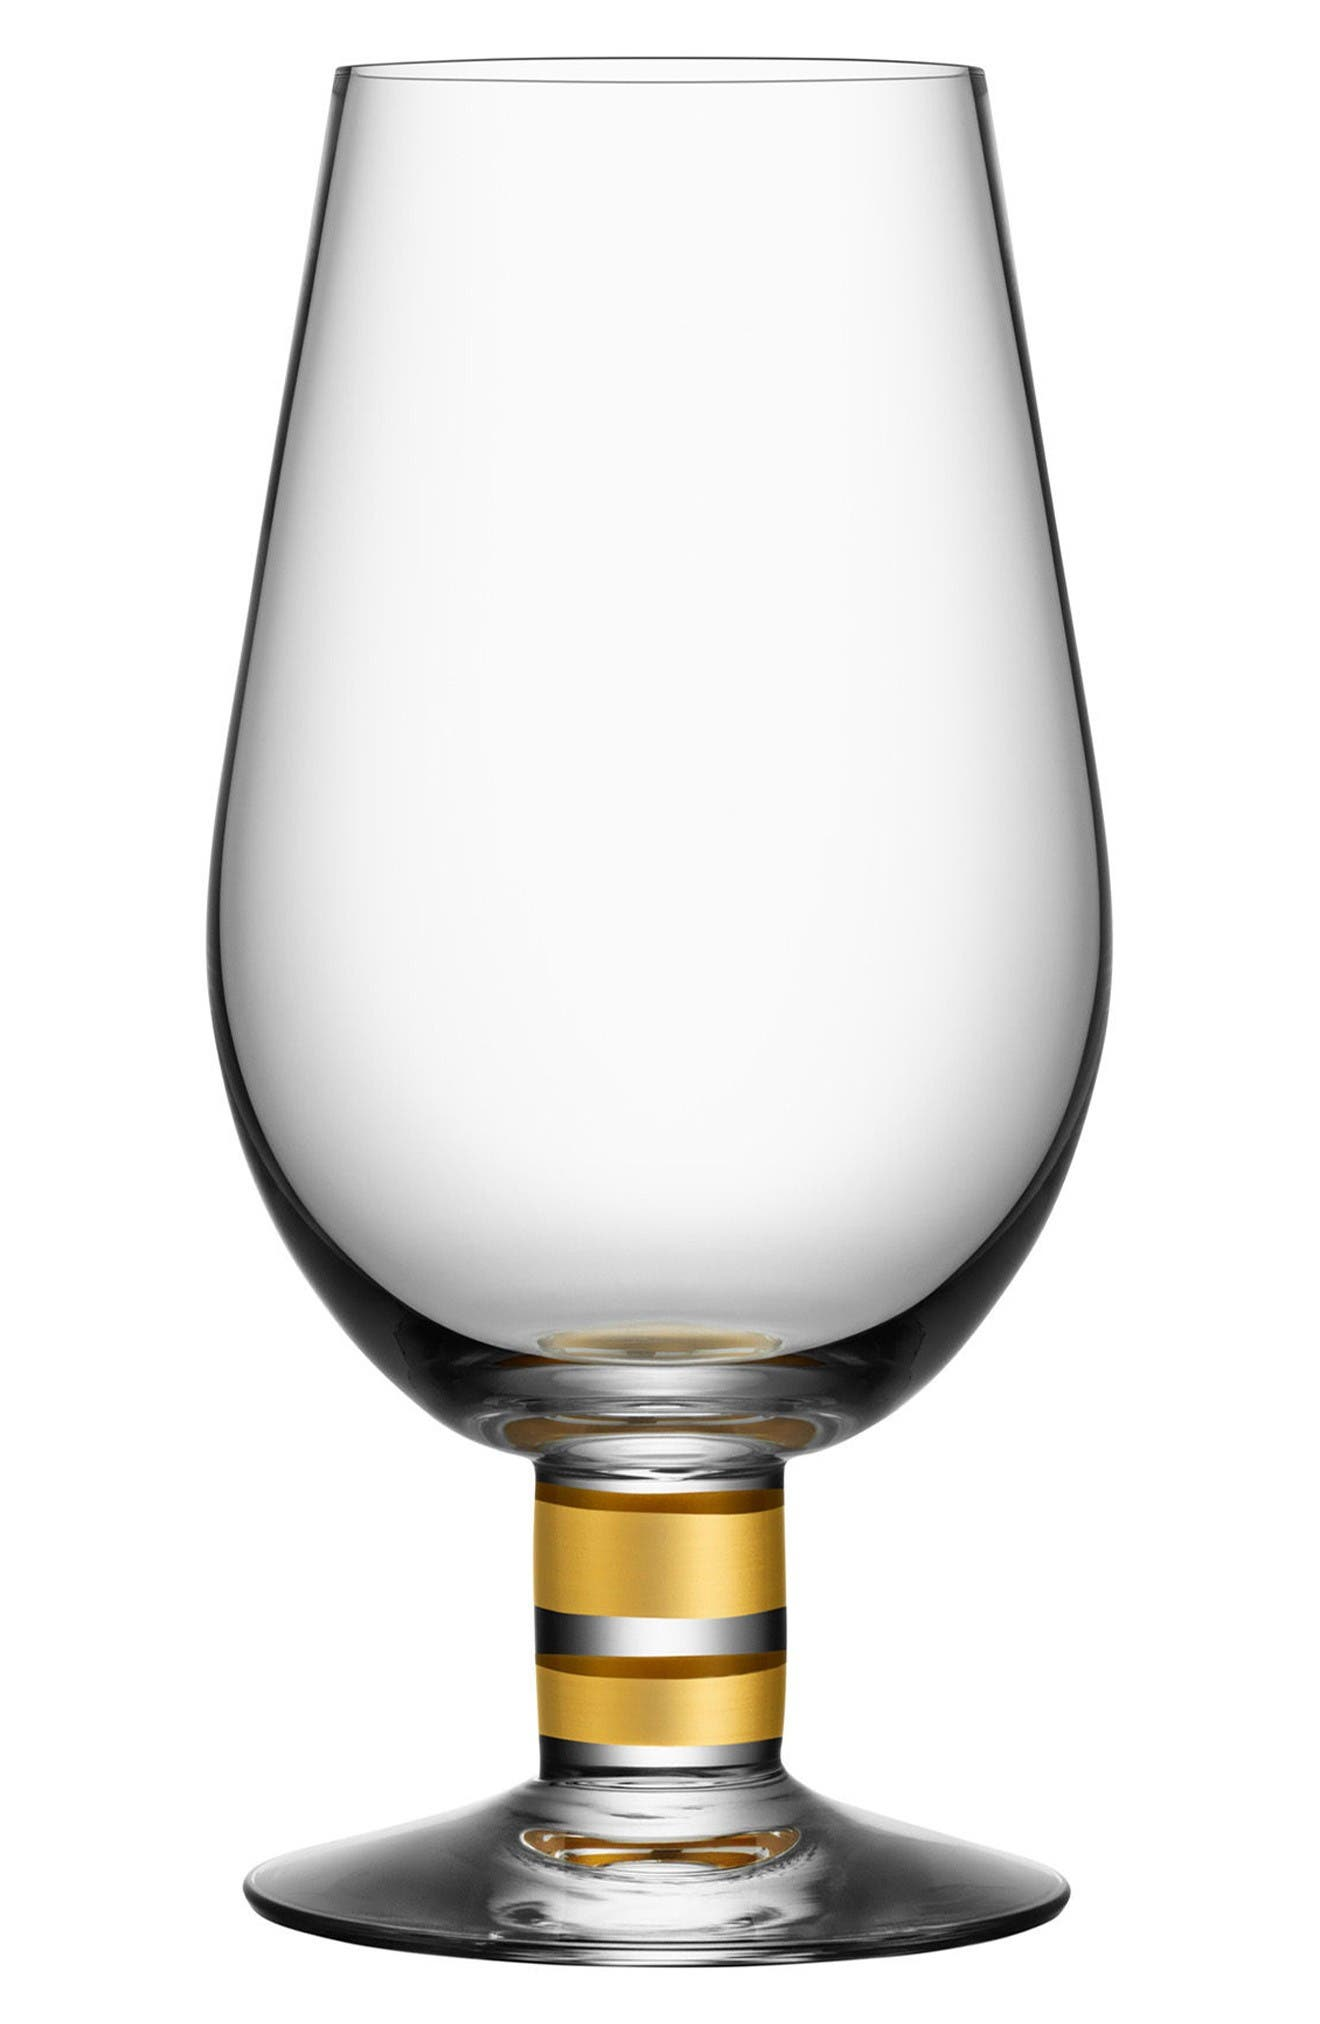 Main Image - Orrefors Morberg Collection Set of 2 Footed Crystal Beer Glasses (Nordstrom Exclusive)